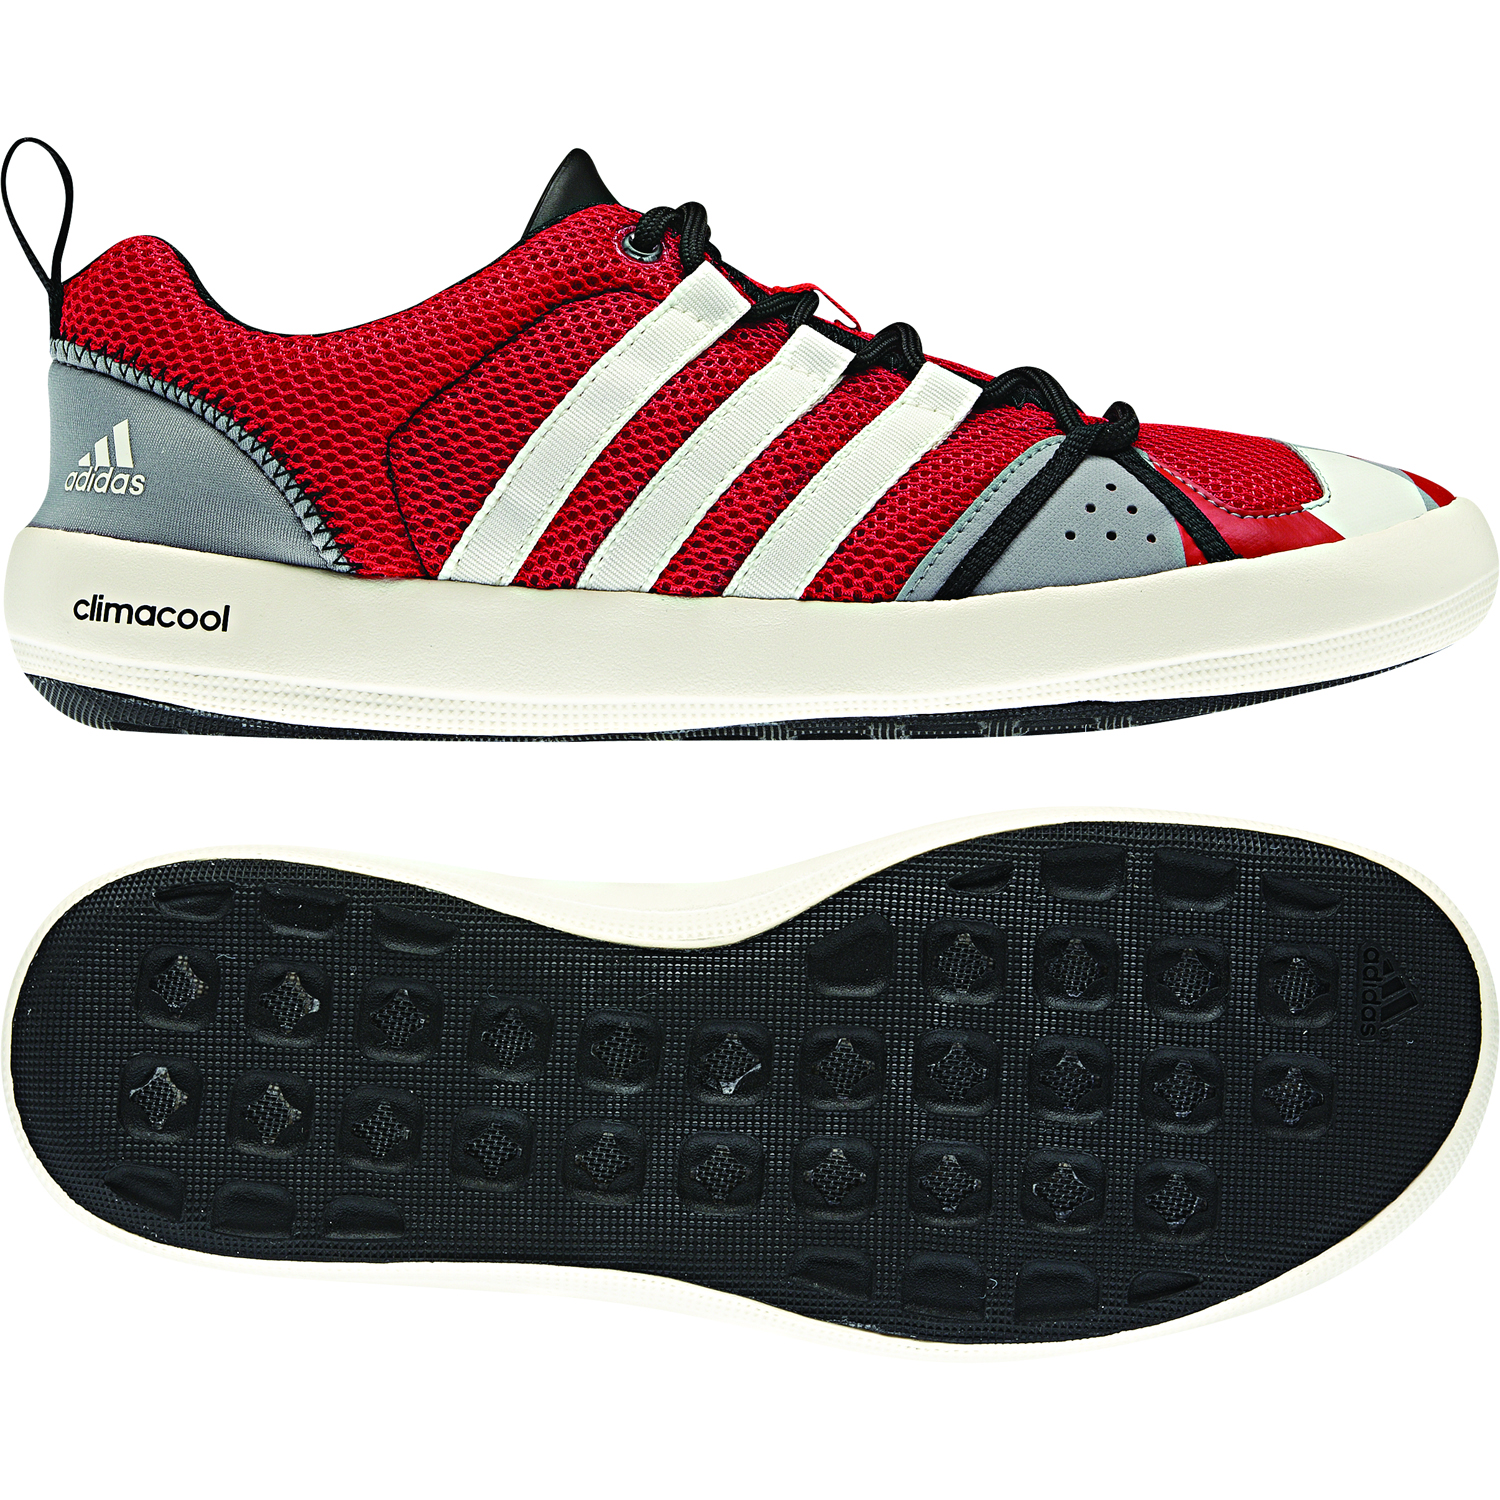 adidas climacool boat lace shoes g64606 team one newport. Black Bedroom Furniture Sets. Home Design Ideas